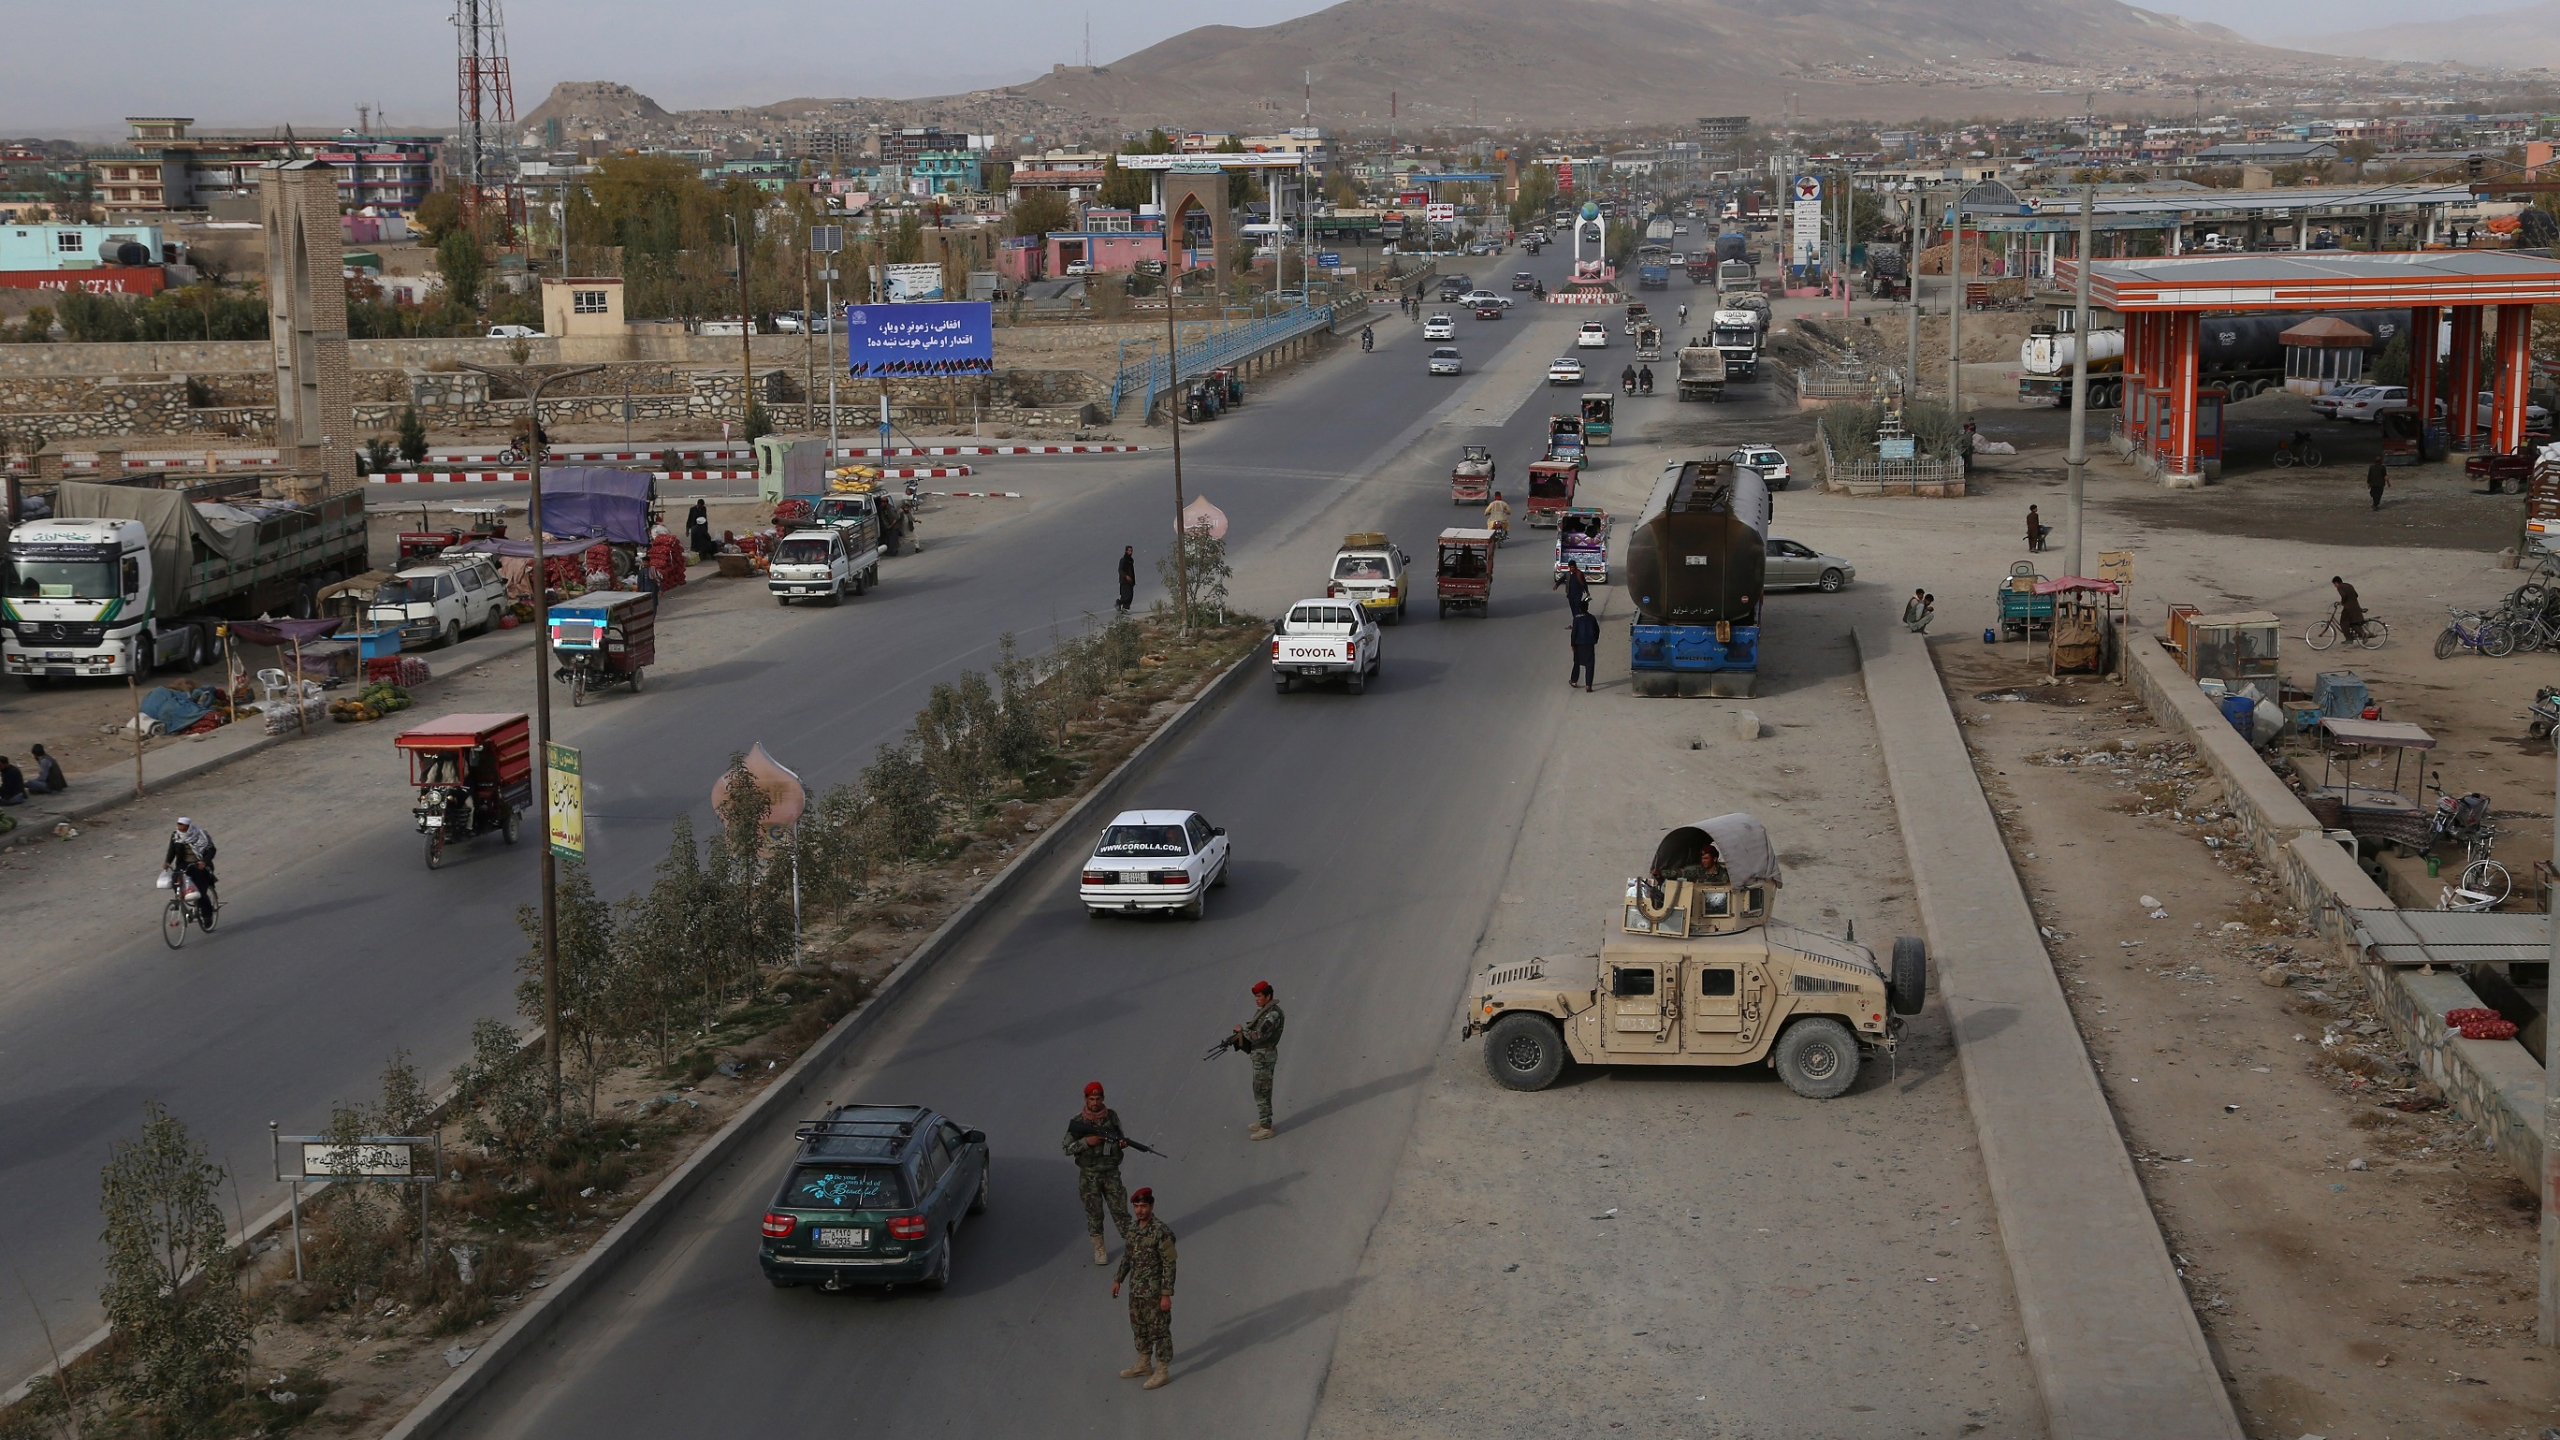 In this photo taken on October 29, 2018, Afghan security personnel search passengers in a checkpoint on Highway One in Ghazni. (Credit: ZAKERIA HASHIMI/AFP/Getty Images)